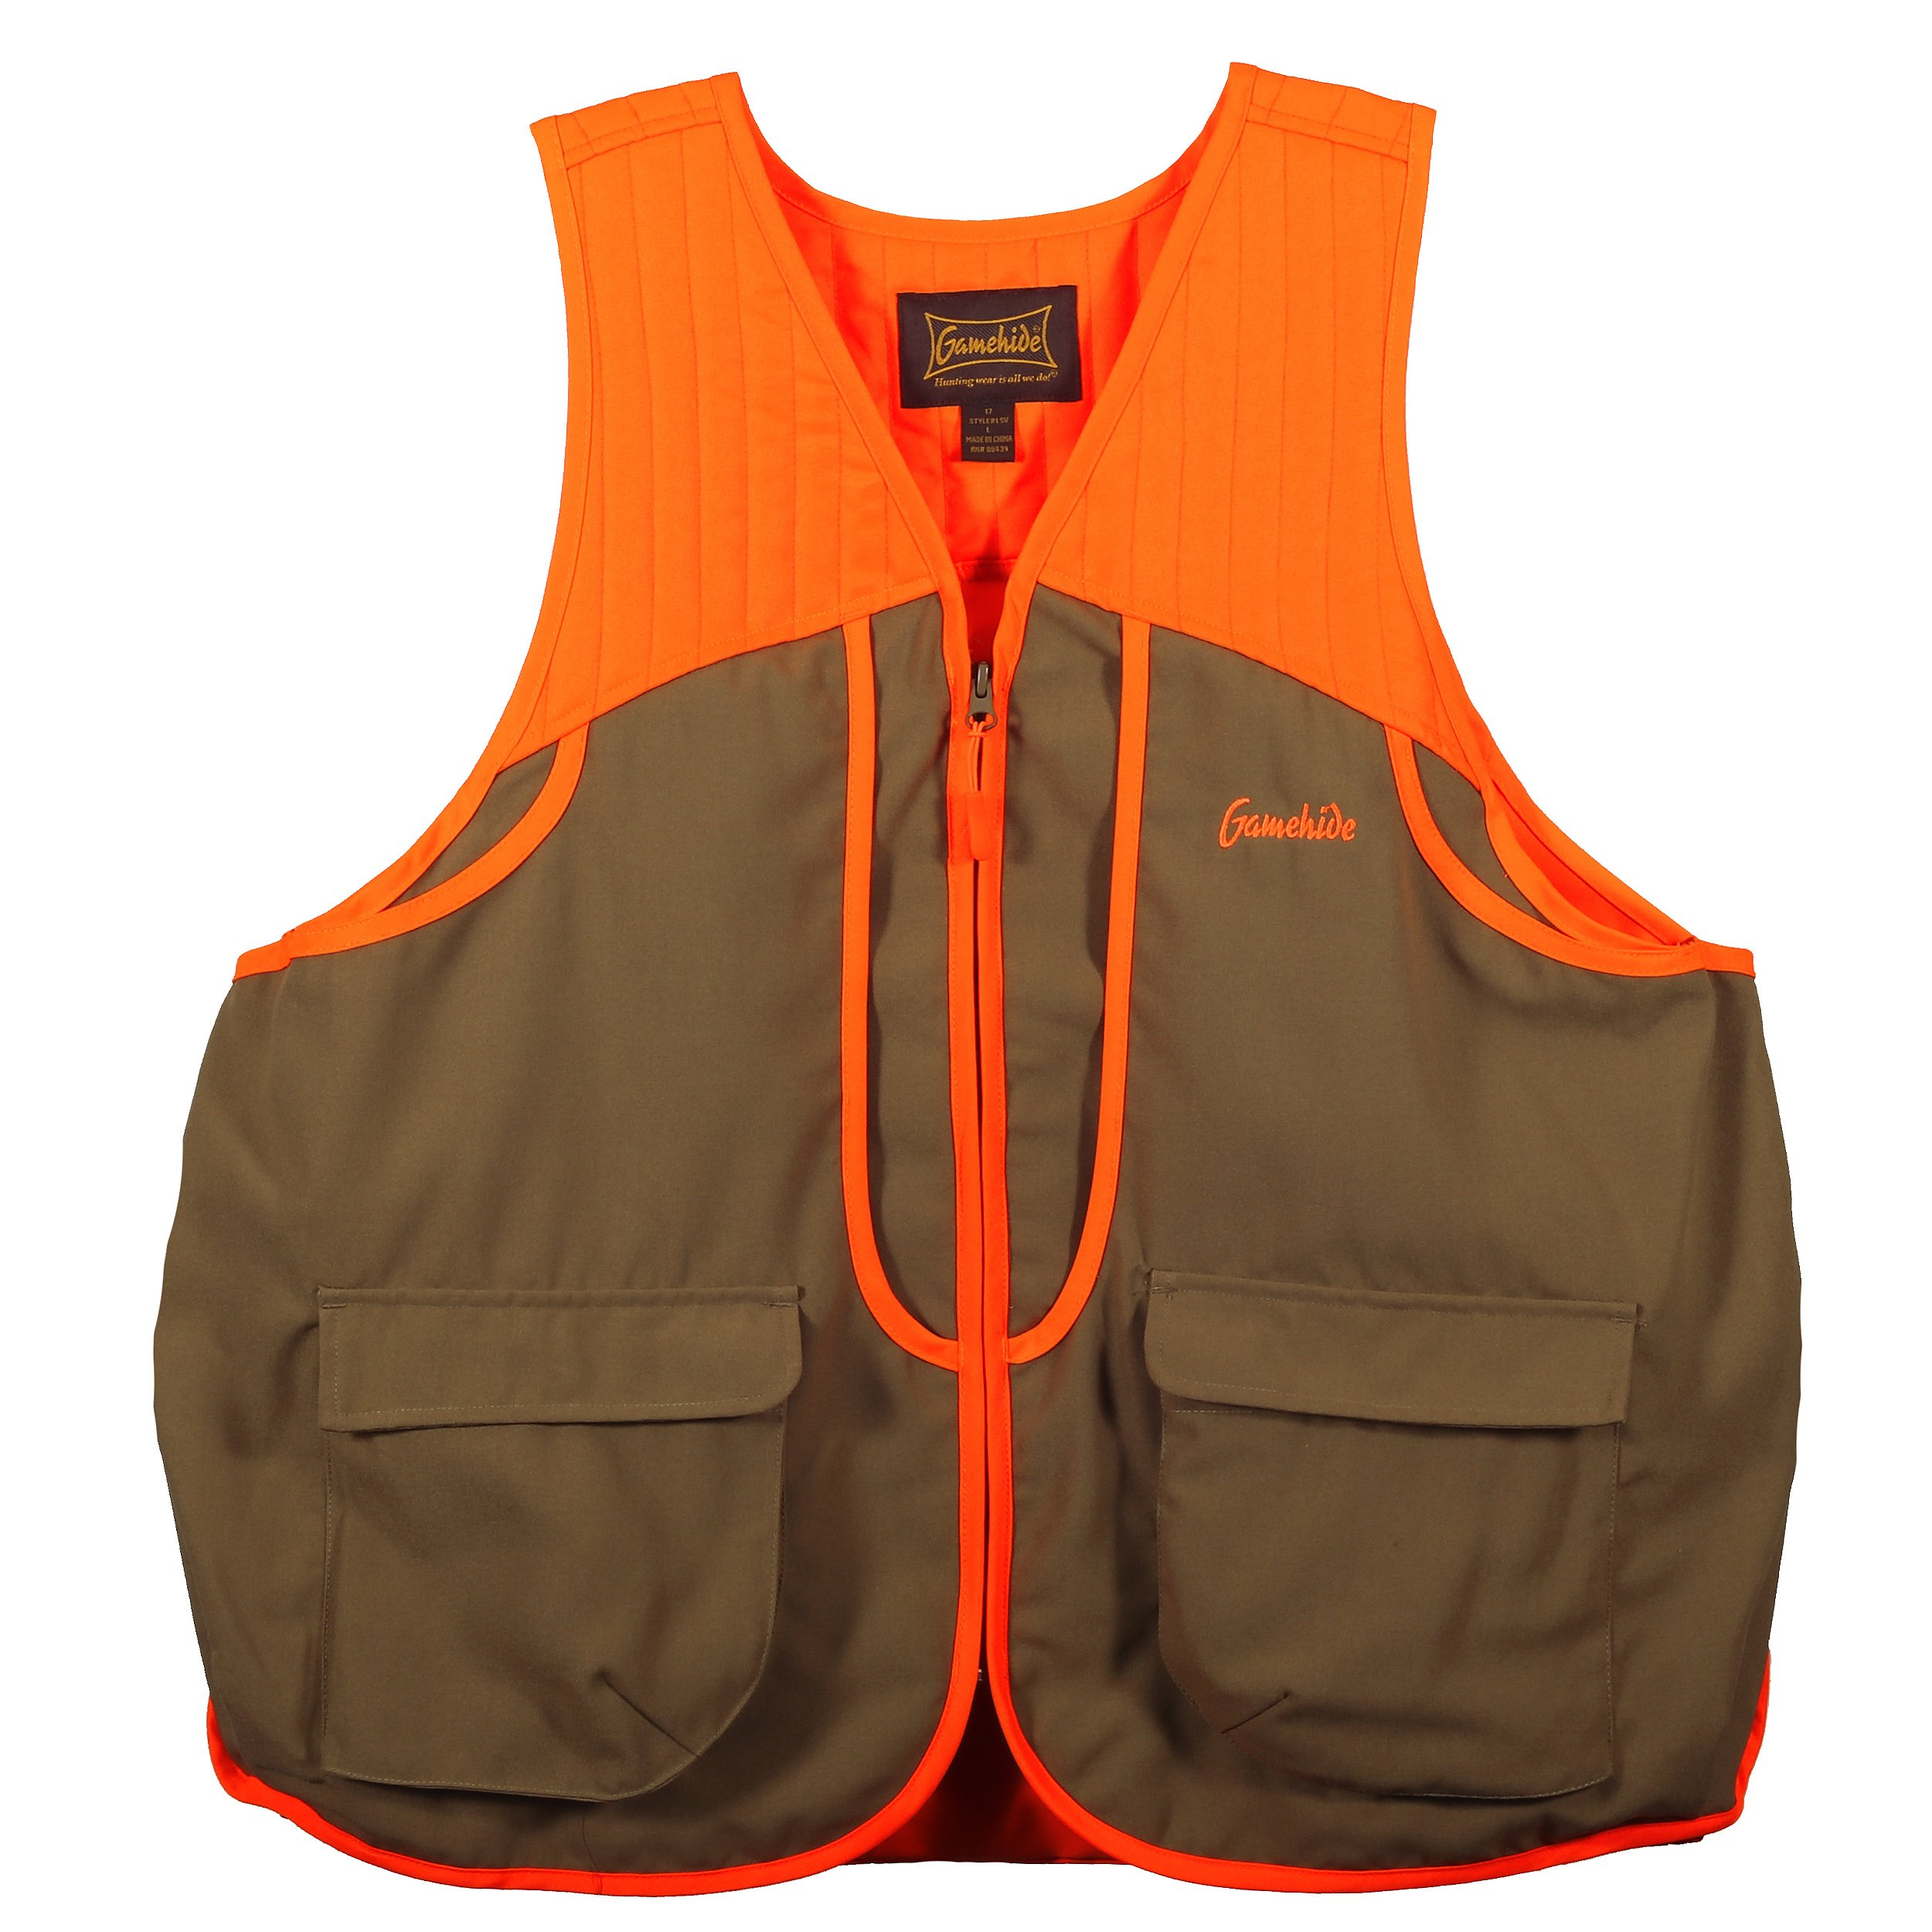 Gamehide Ladies Women's Upland Field Hunting Vest (Tan/Orange, Large) by Gamehide